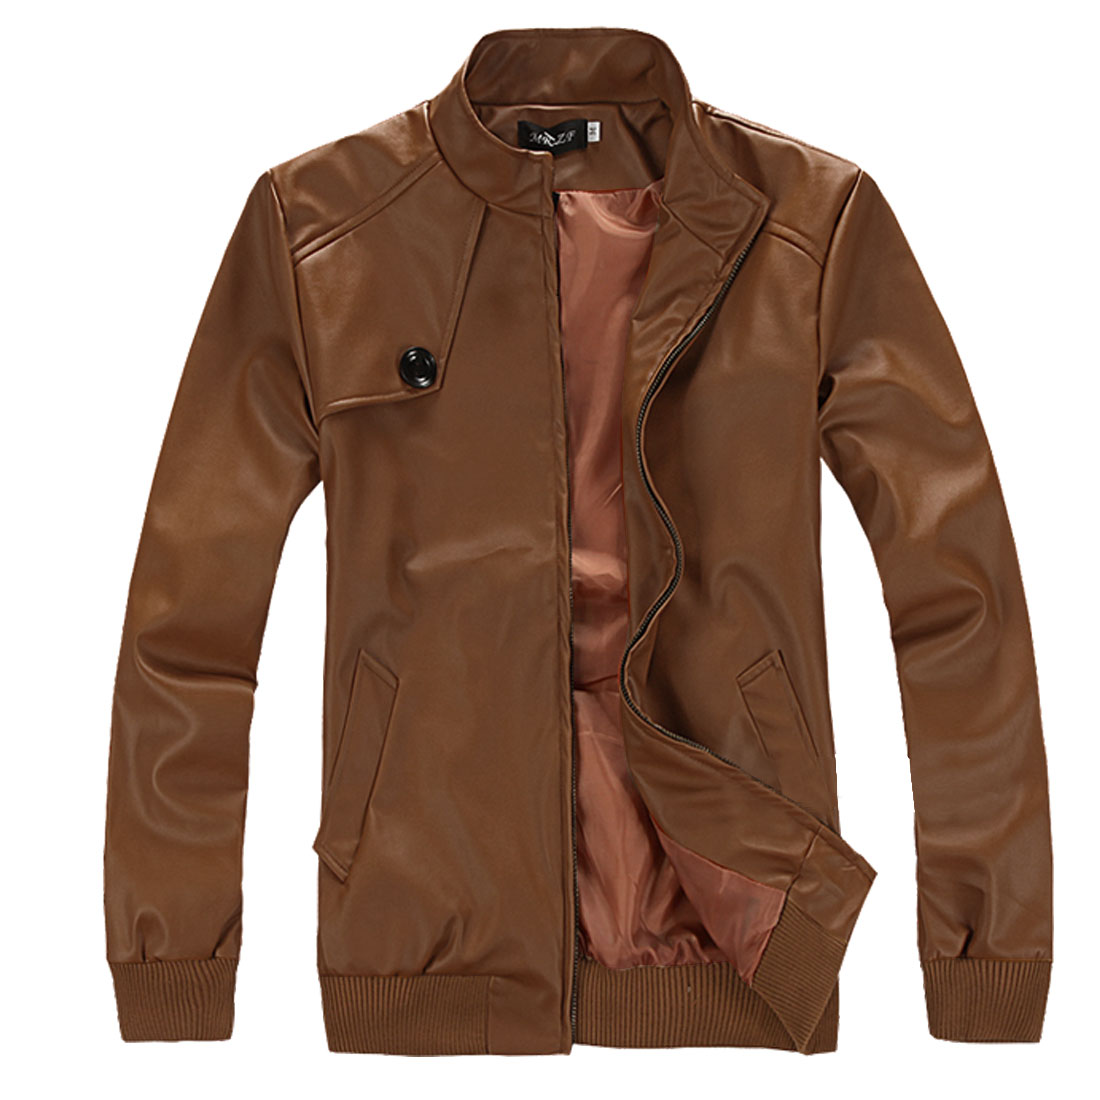 Mens Brown Stand Collar New Fashion Leather Look Jackets M